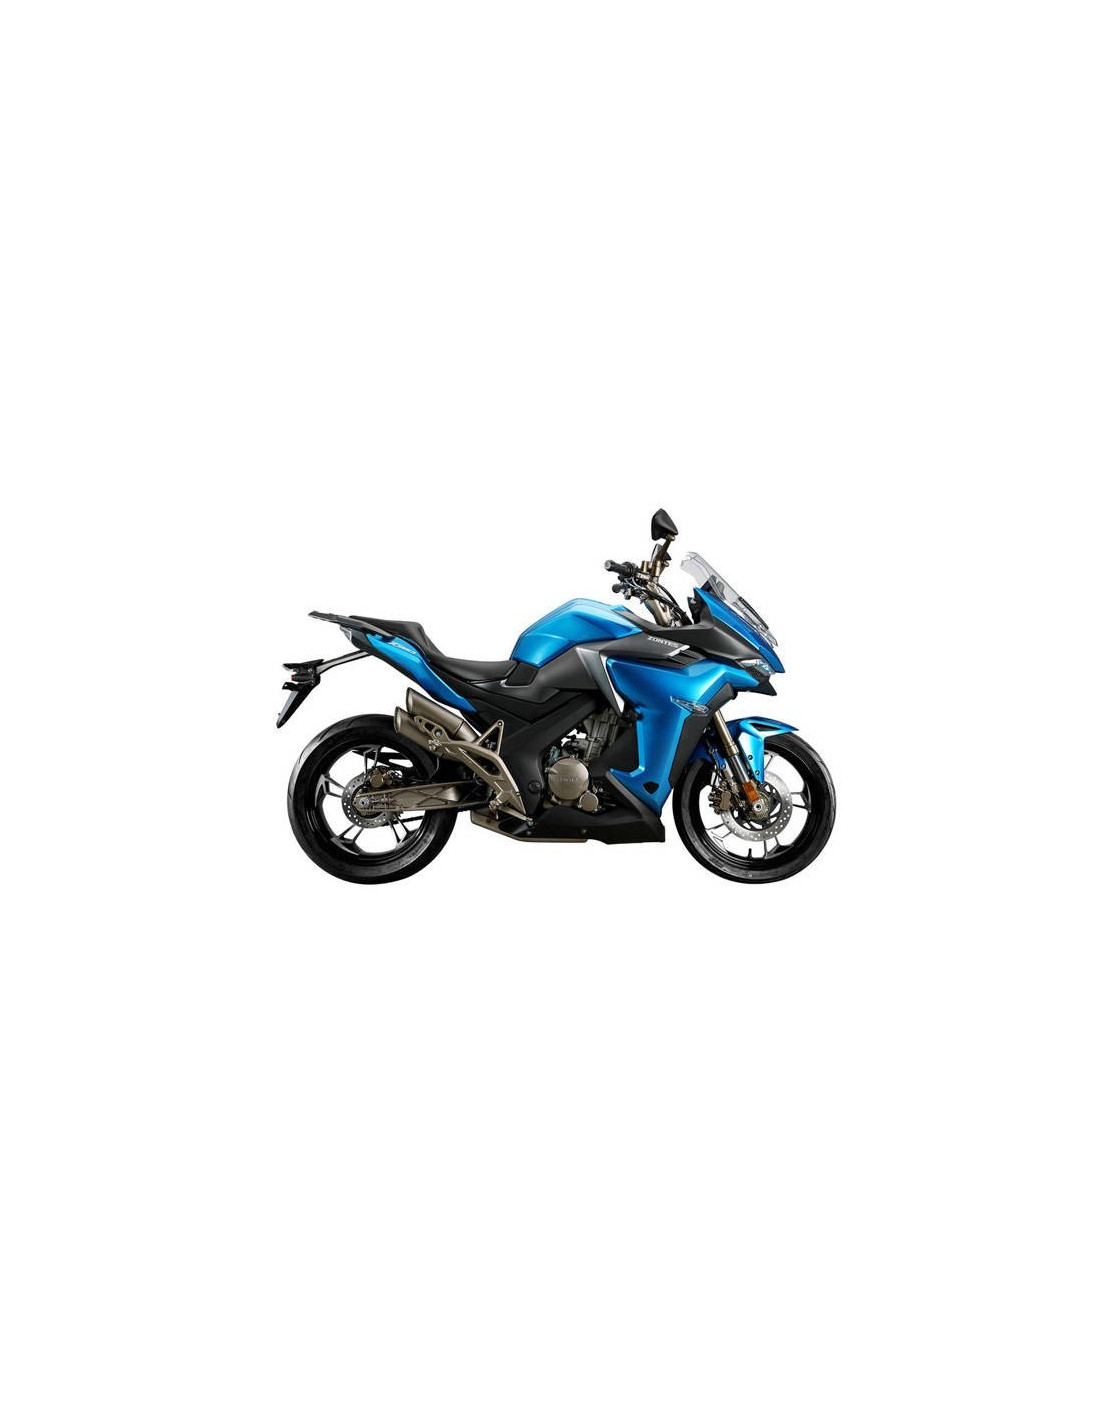 Zontes Zt 310 X Price In Pakistan Rating Specs Reviews And Pictures